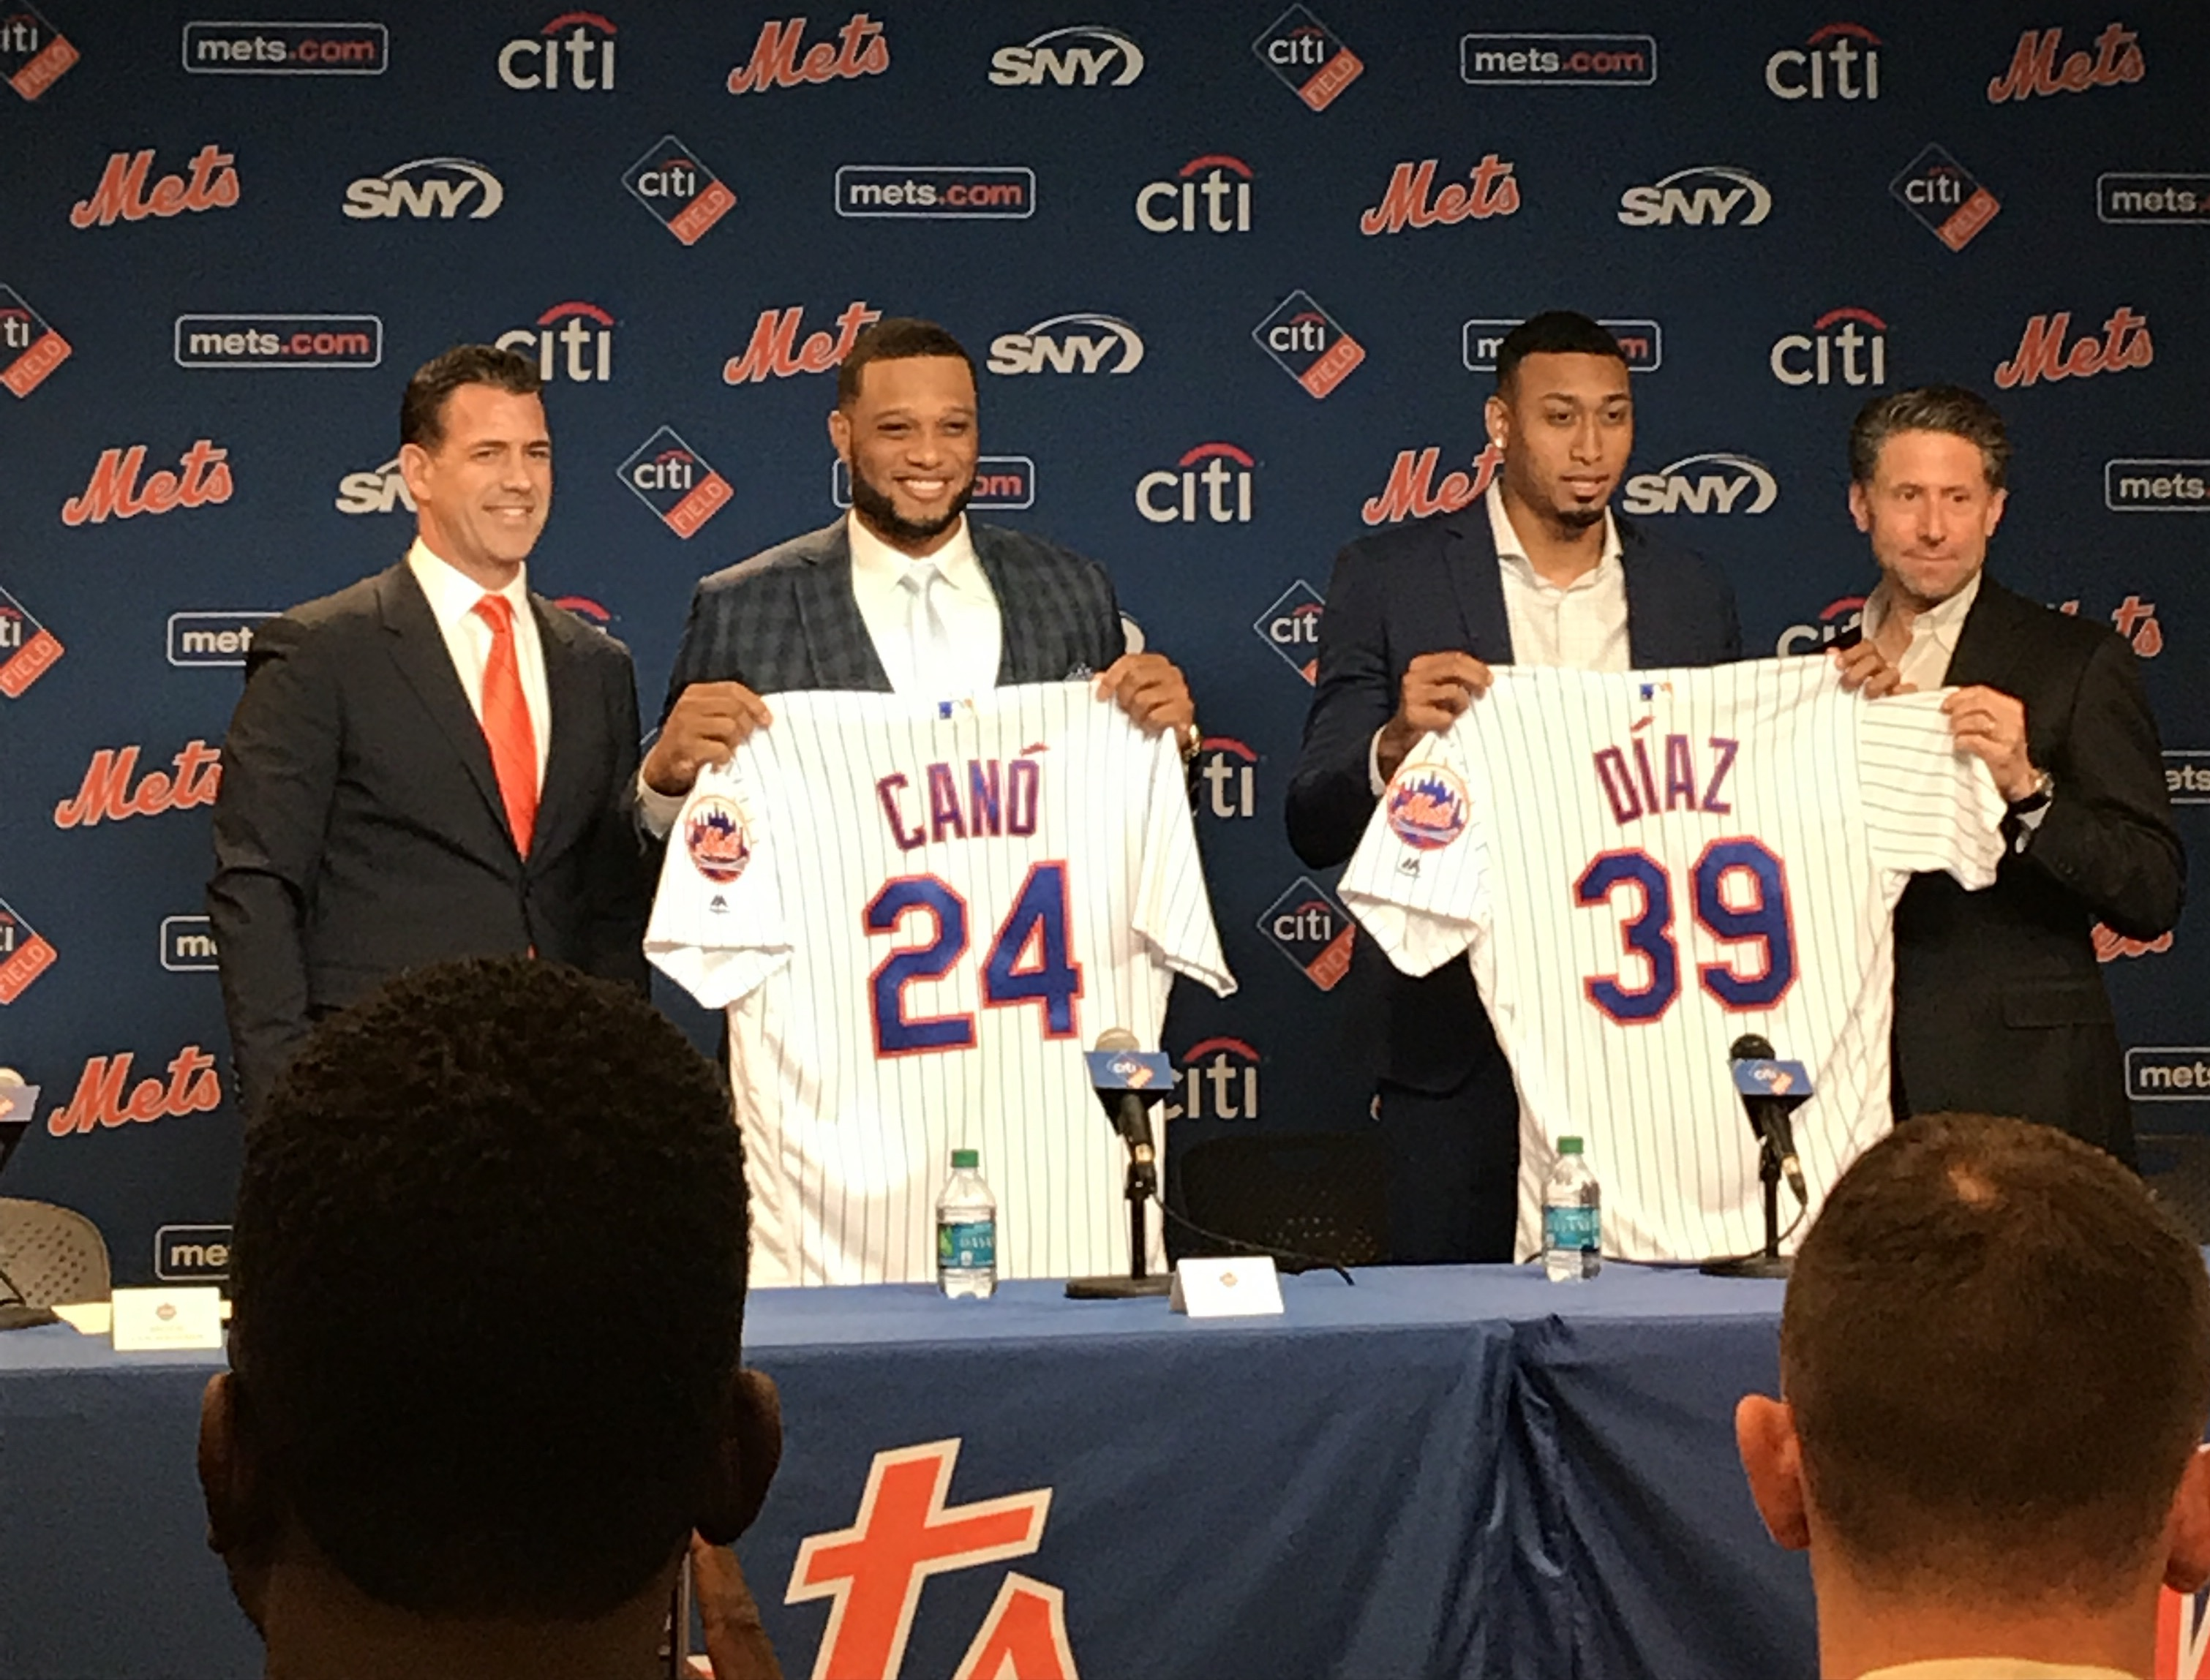 Meet the (new) Mets - Robinson Cano and Edwin Diaz | WFUV